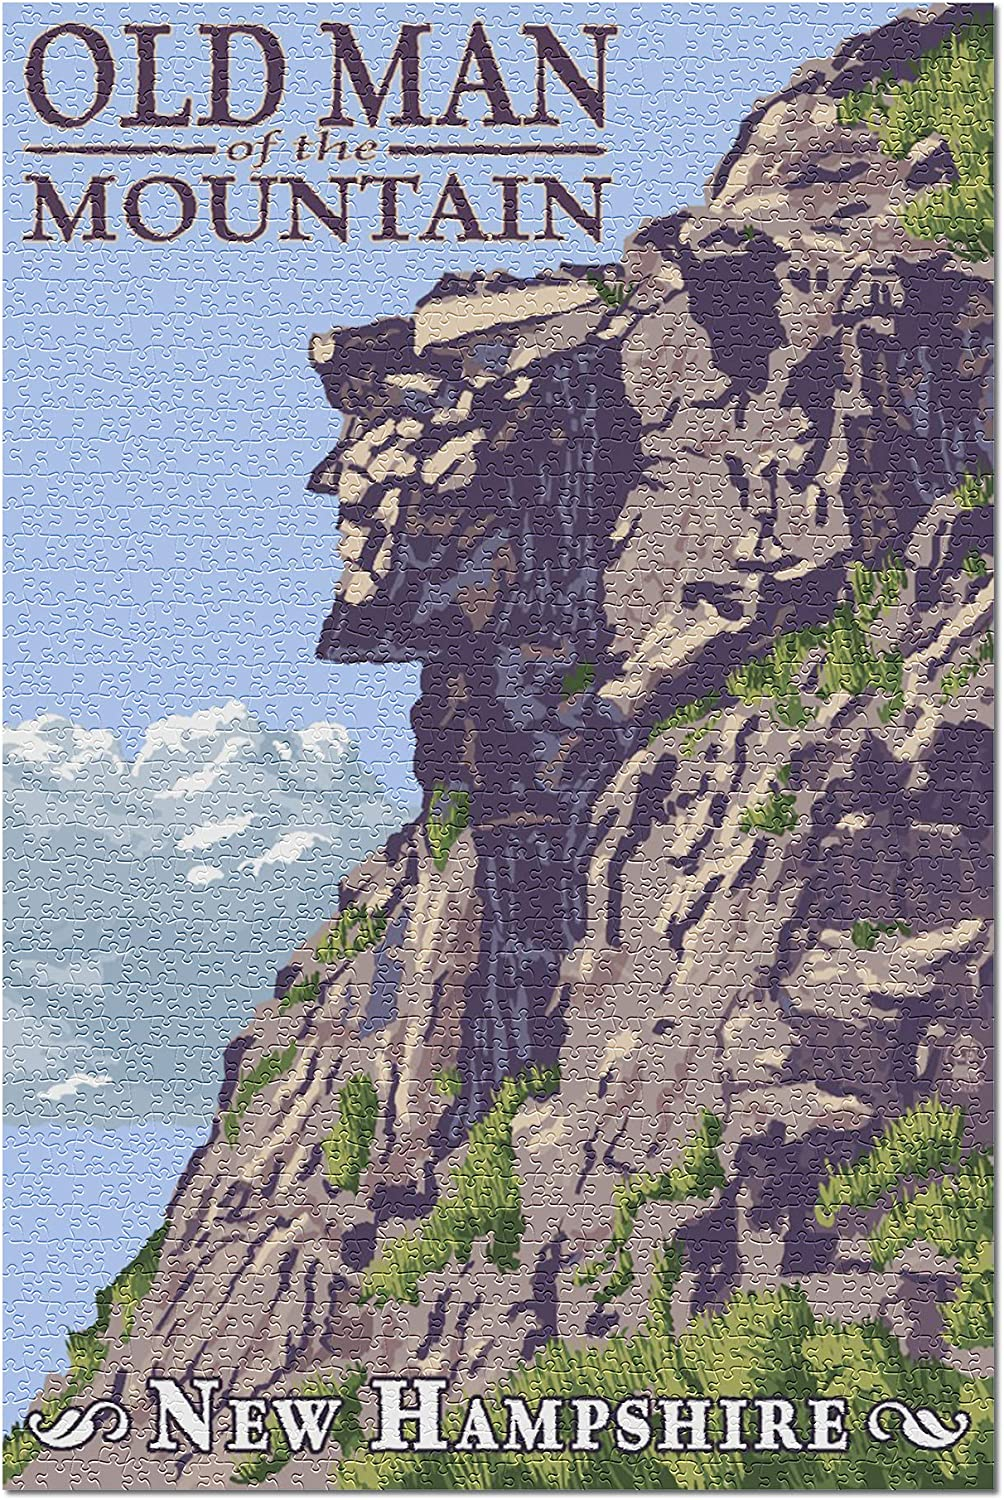 New Hampshire - Old Man of the Mountain 34129 (19x27 Premium 1000 Piece Jigsaw Puzzle for Adults, Made in USA!)